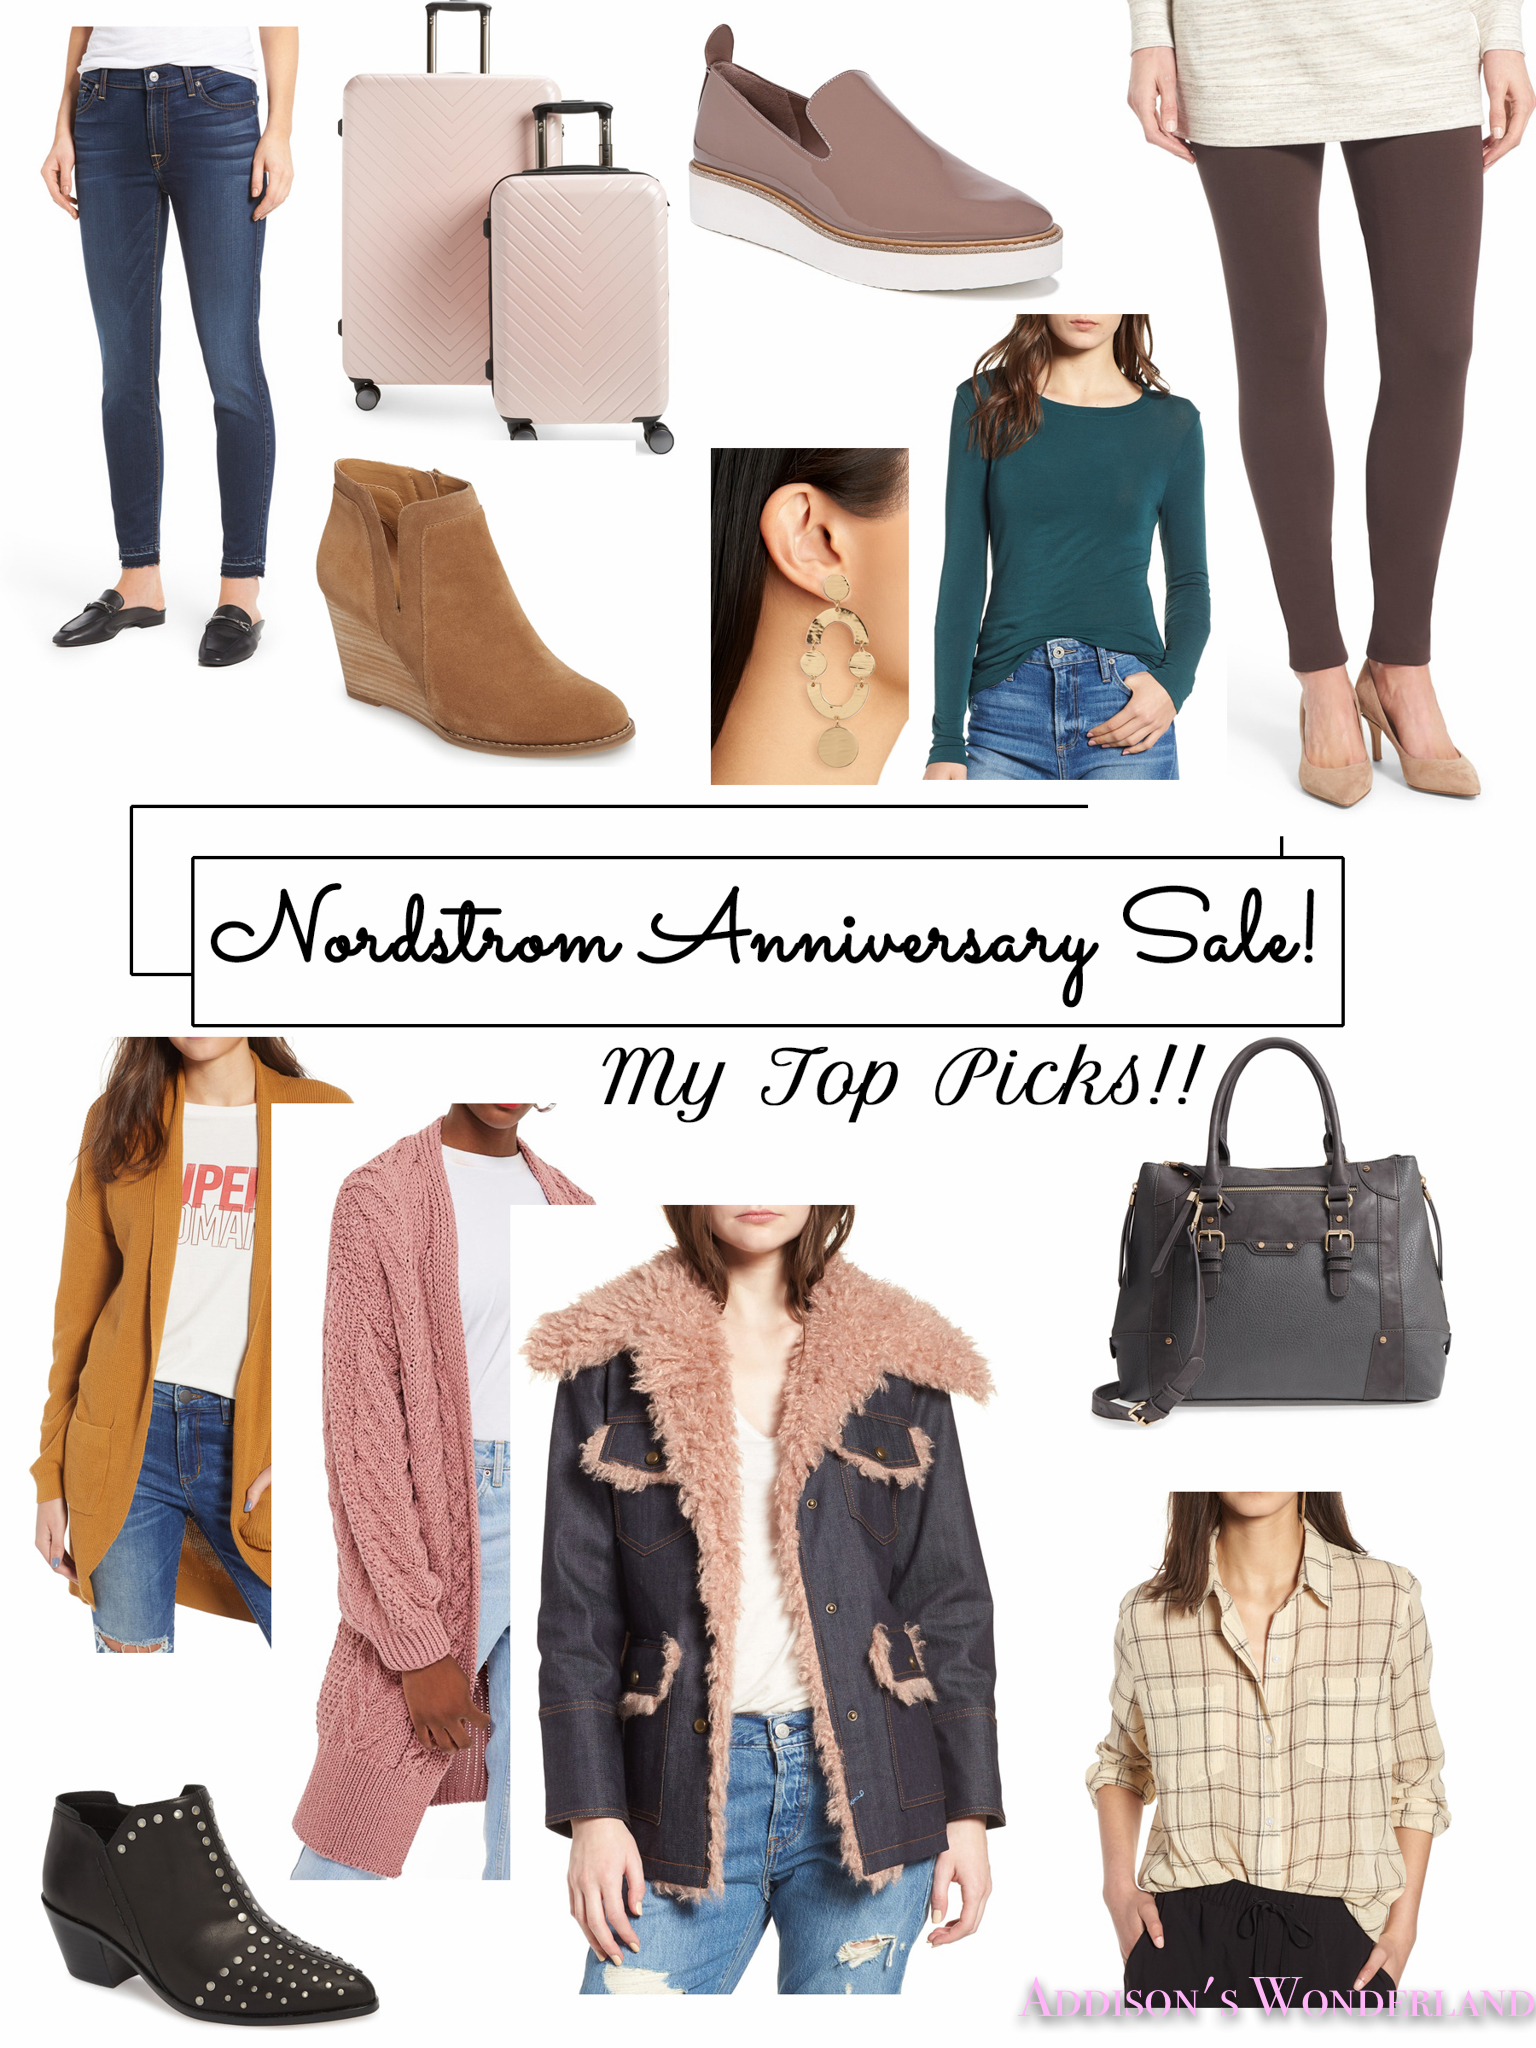 My Top Picks for the Nordstrom Anniversary Sale!